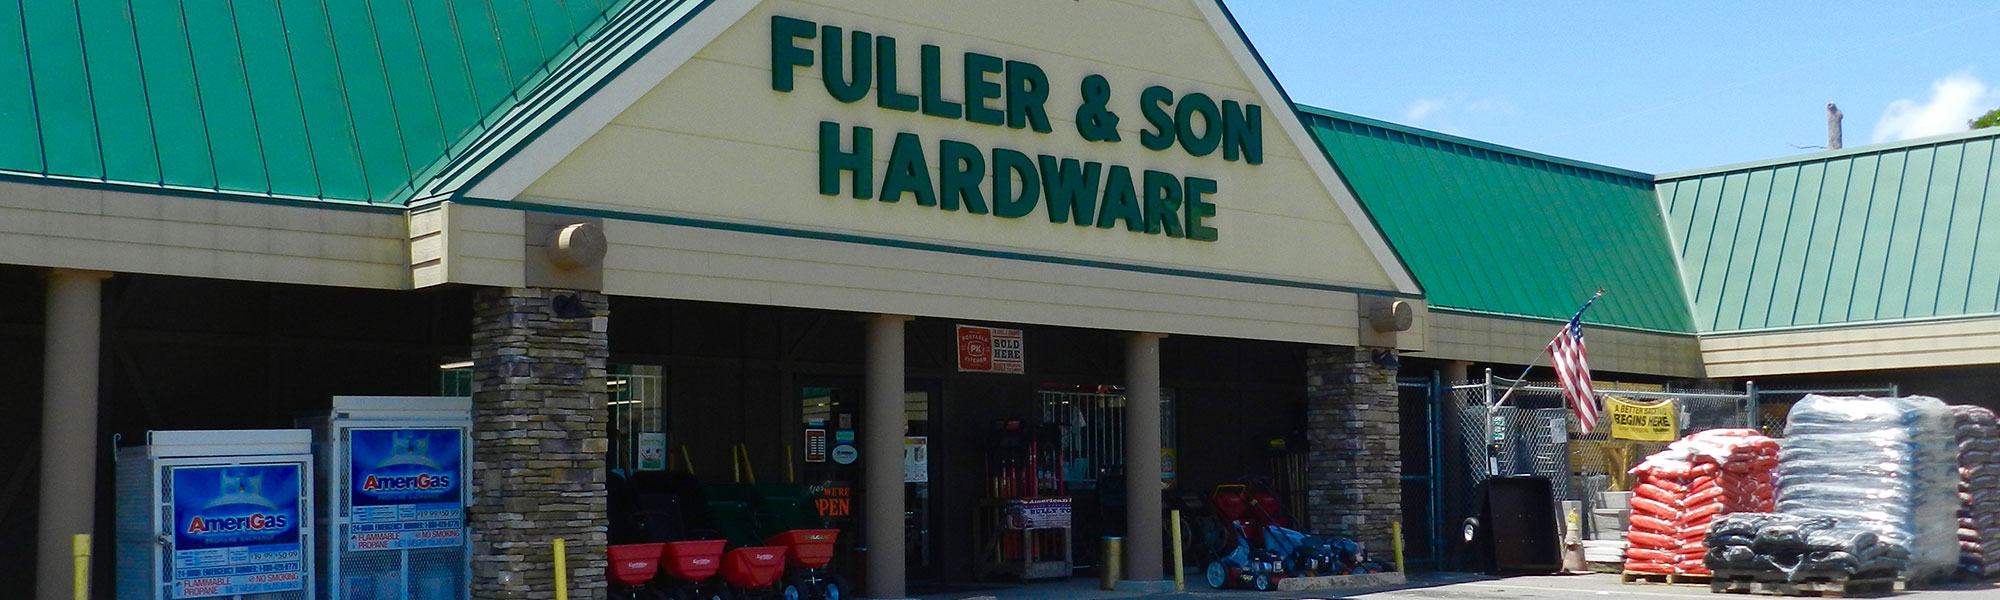 Fuller and Son Hardware Storefront